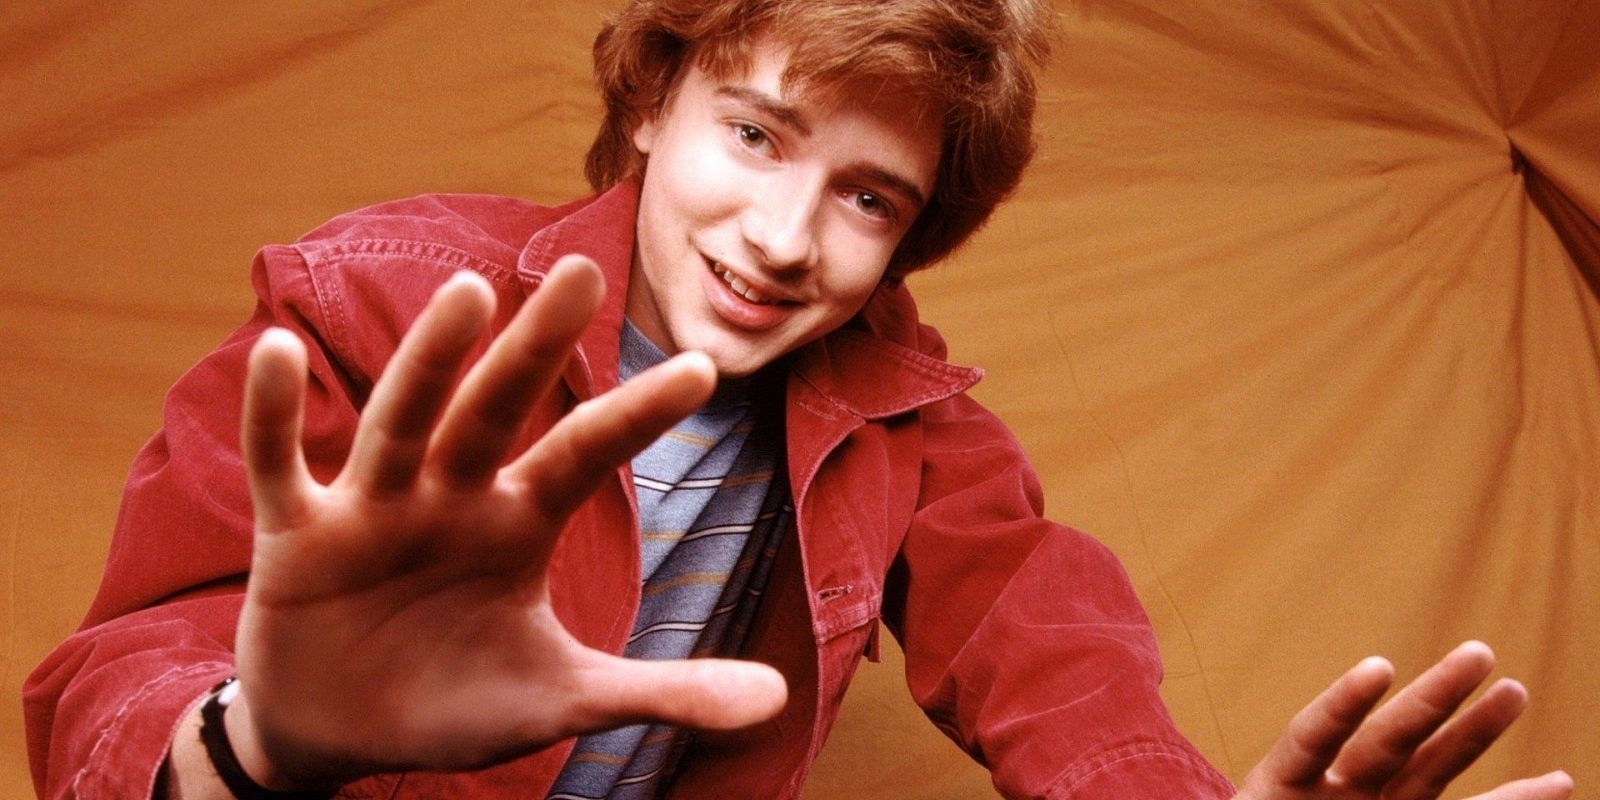 Eric from that '70s show